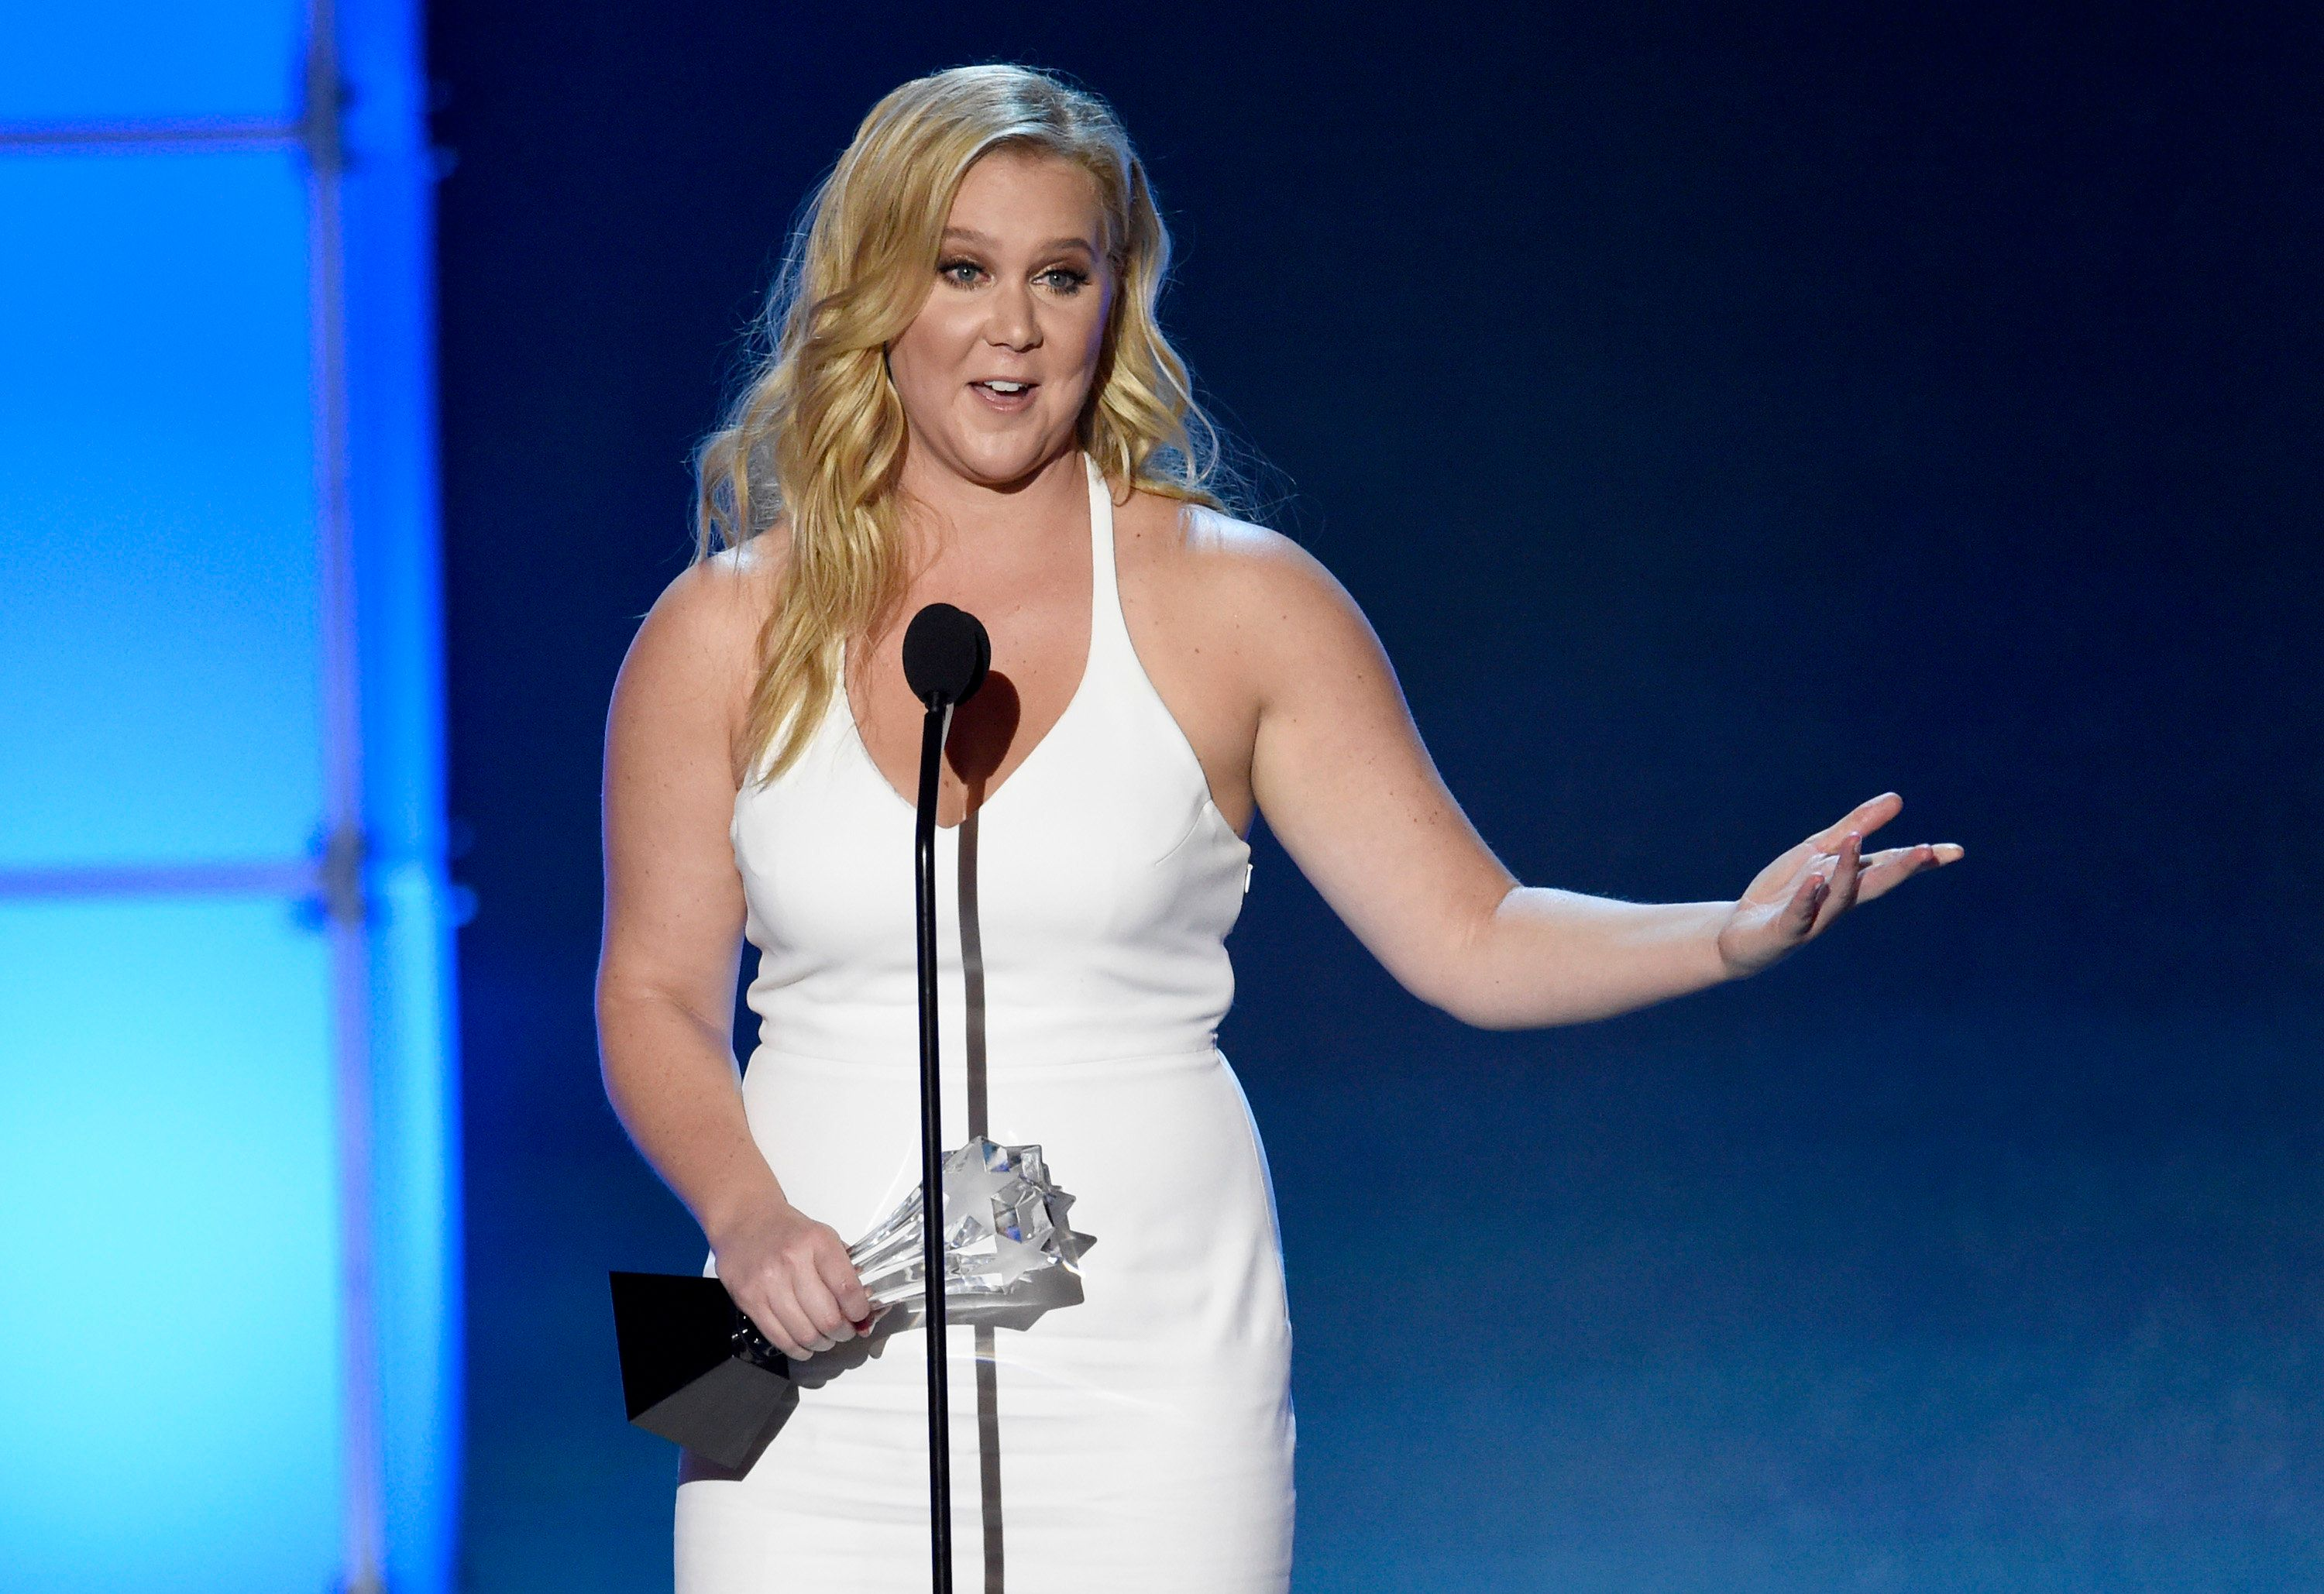 Amy Schumer Just Totally Shut Down A Sexist Heckler Who Demanded To See Her